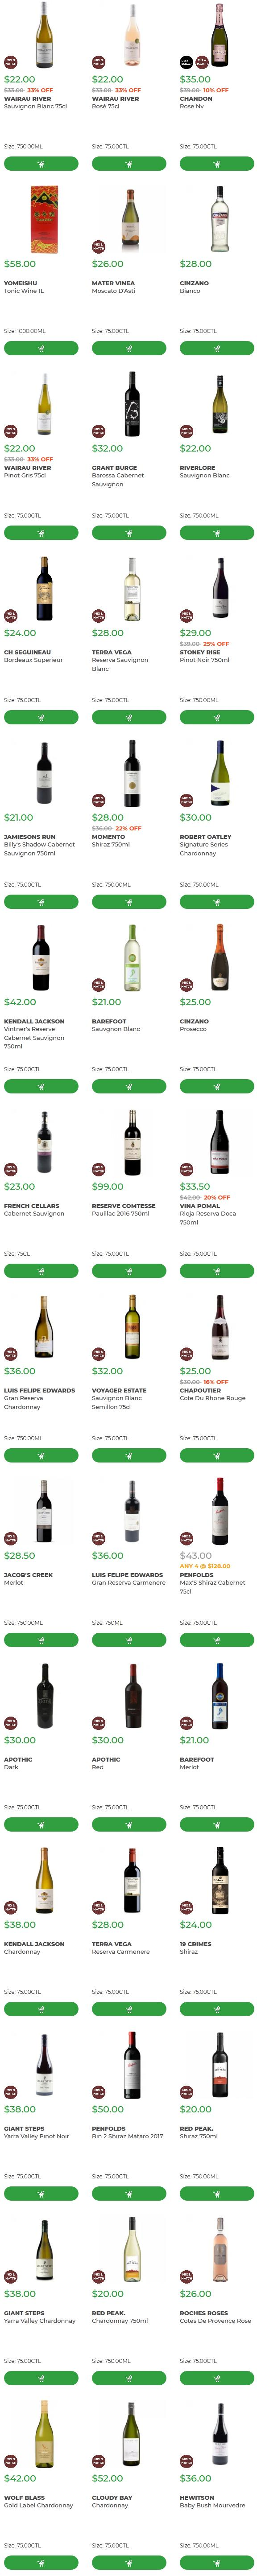 Wine Offer: 33% OFF + Extra 10% OFF 6 Feb 2020